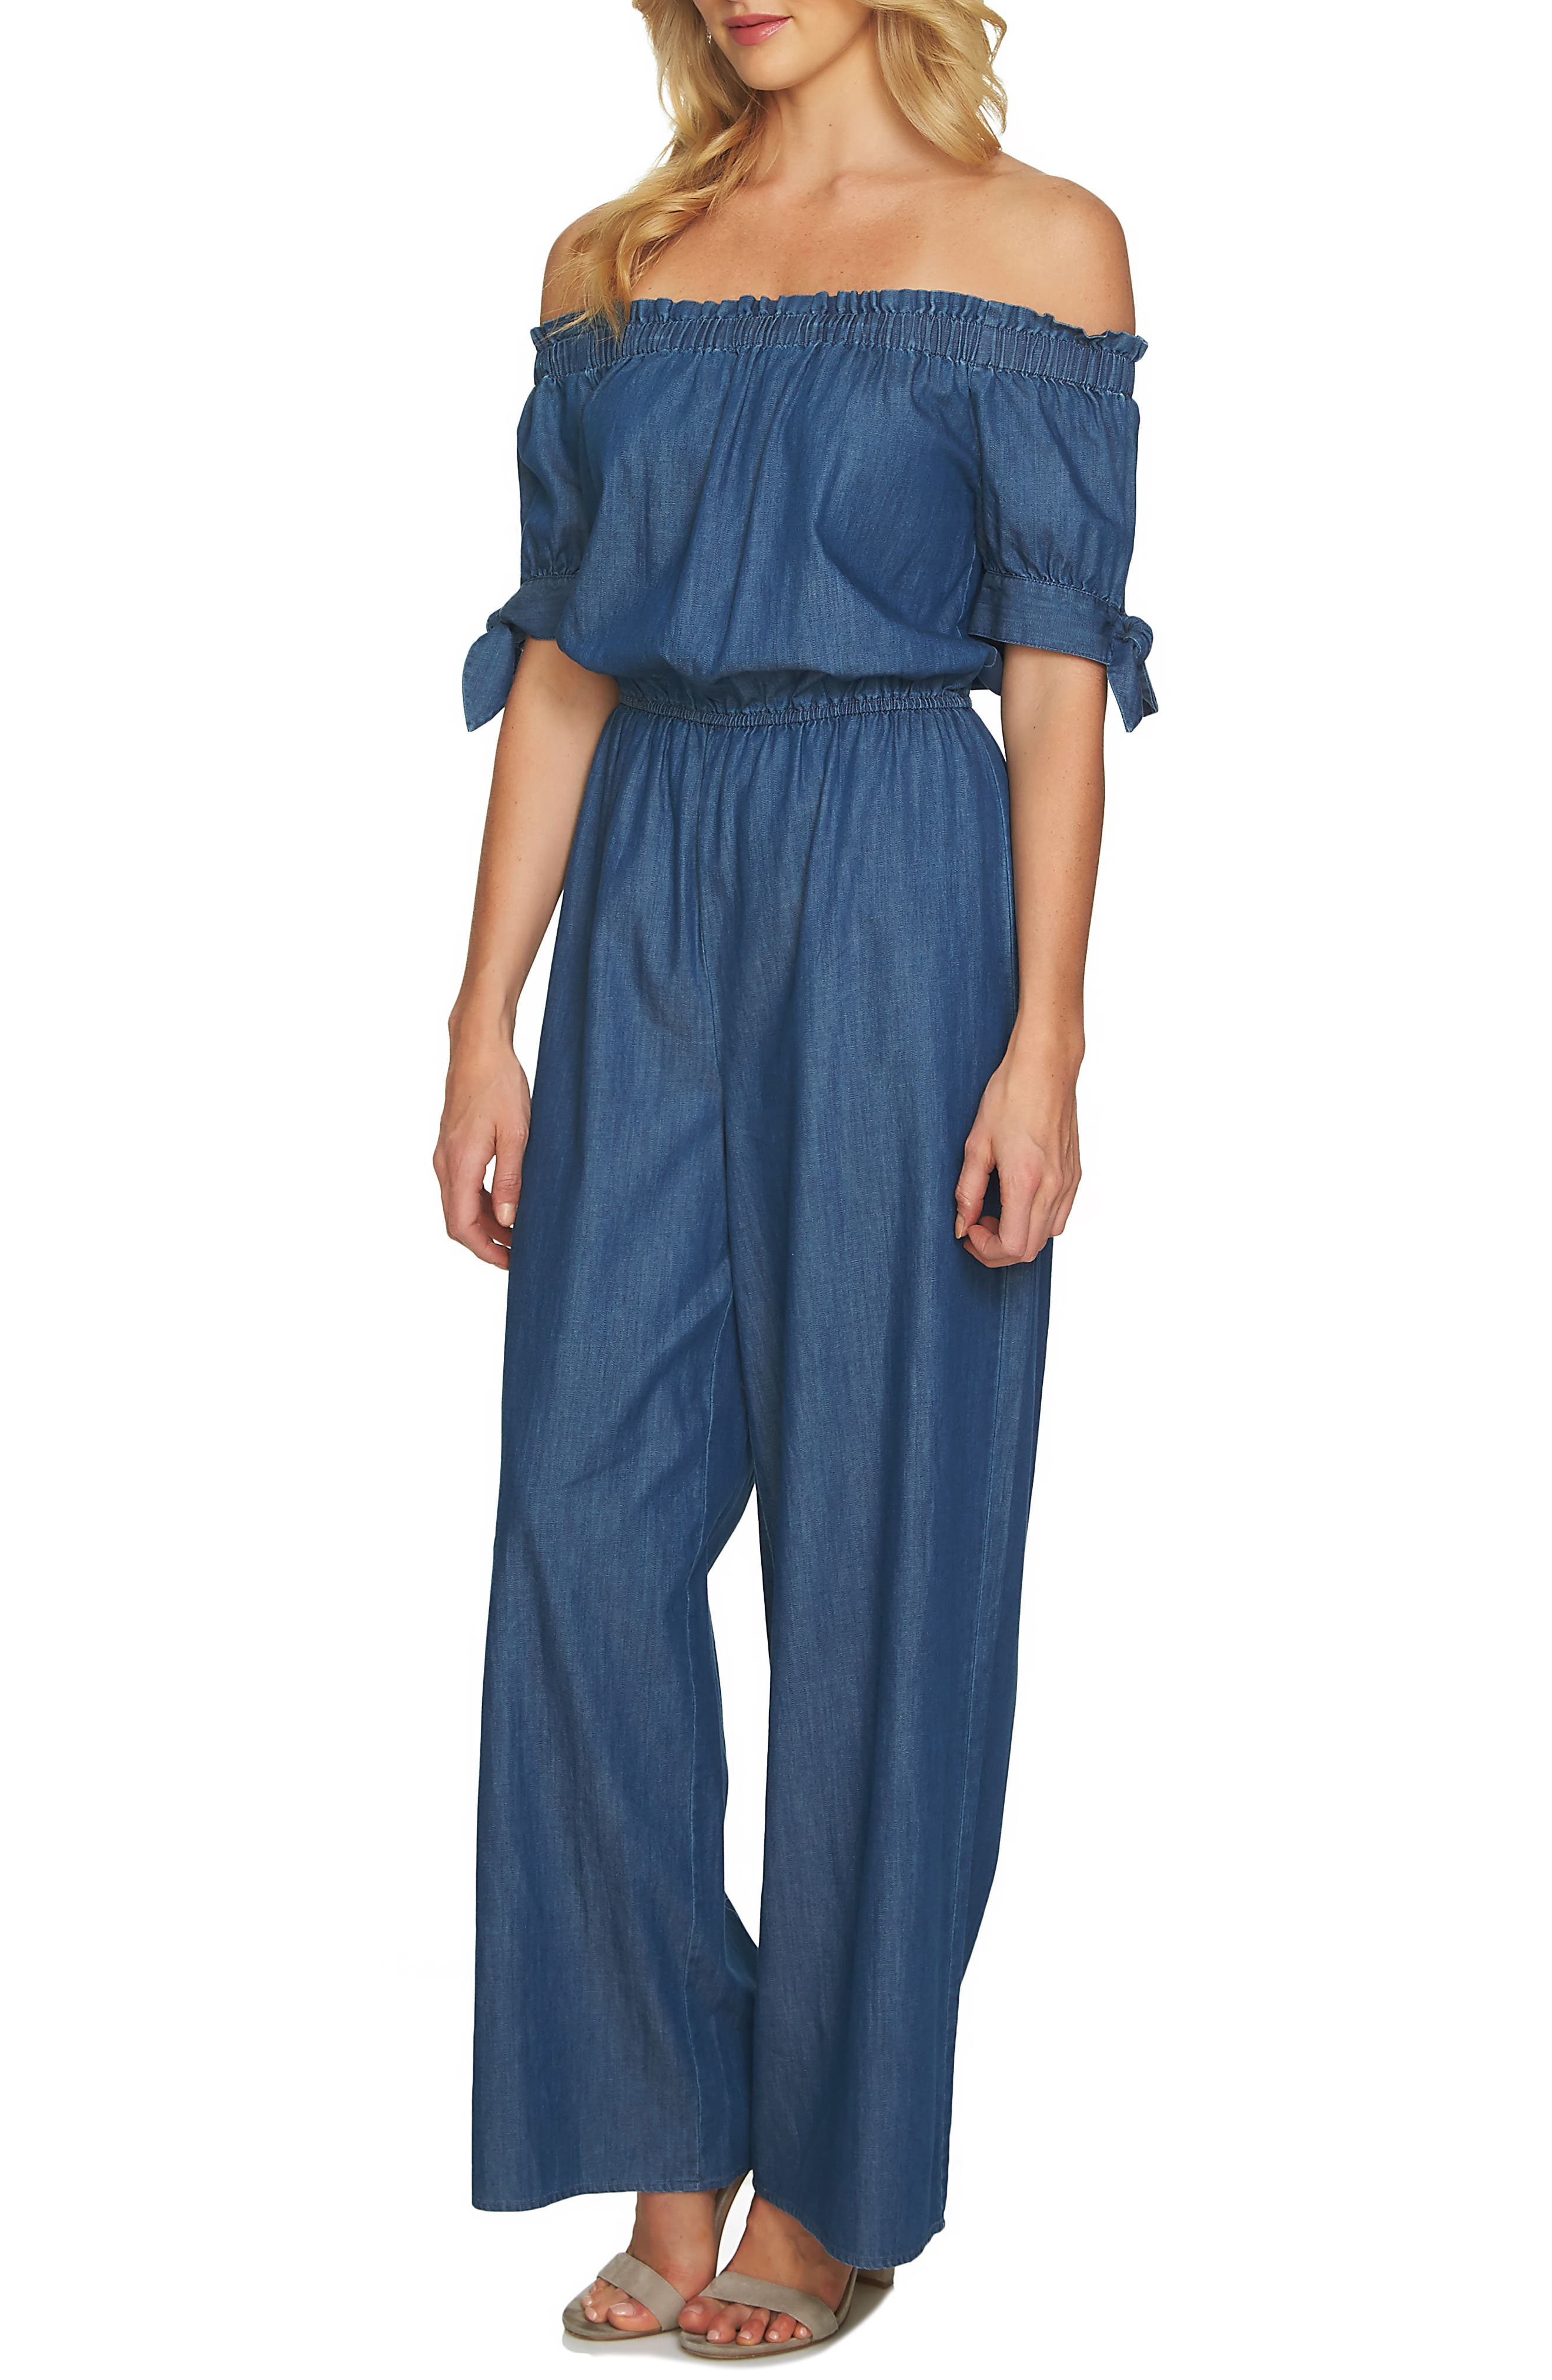 Off the Shoulder Wide Leg Jumpsuit,                         Main,                         color, 422